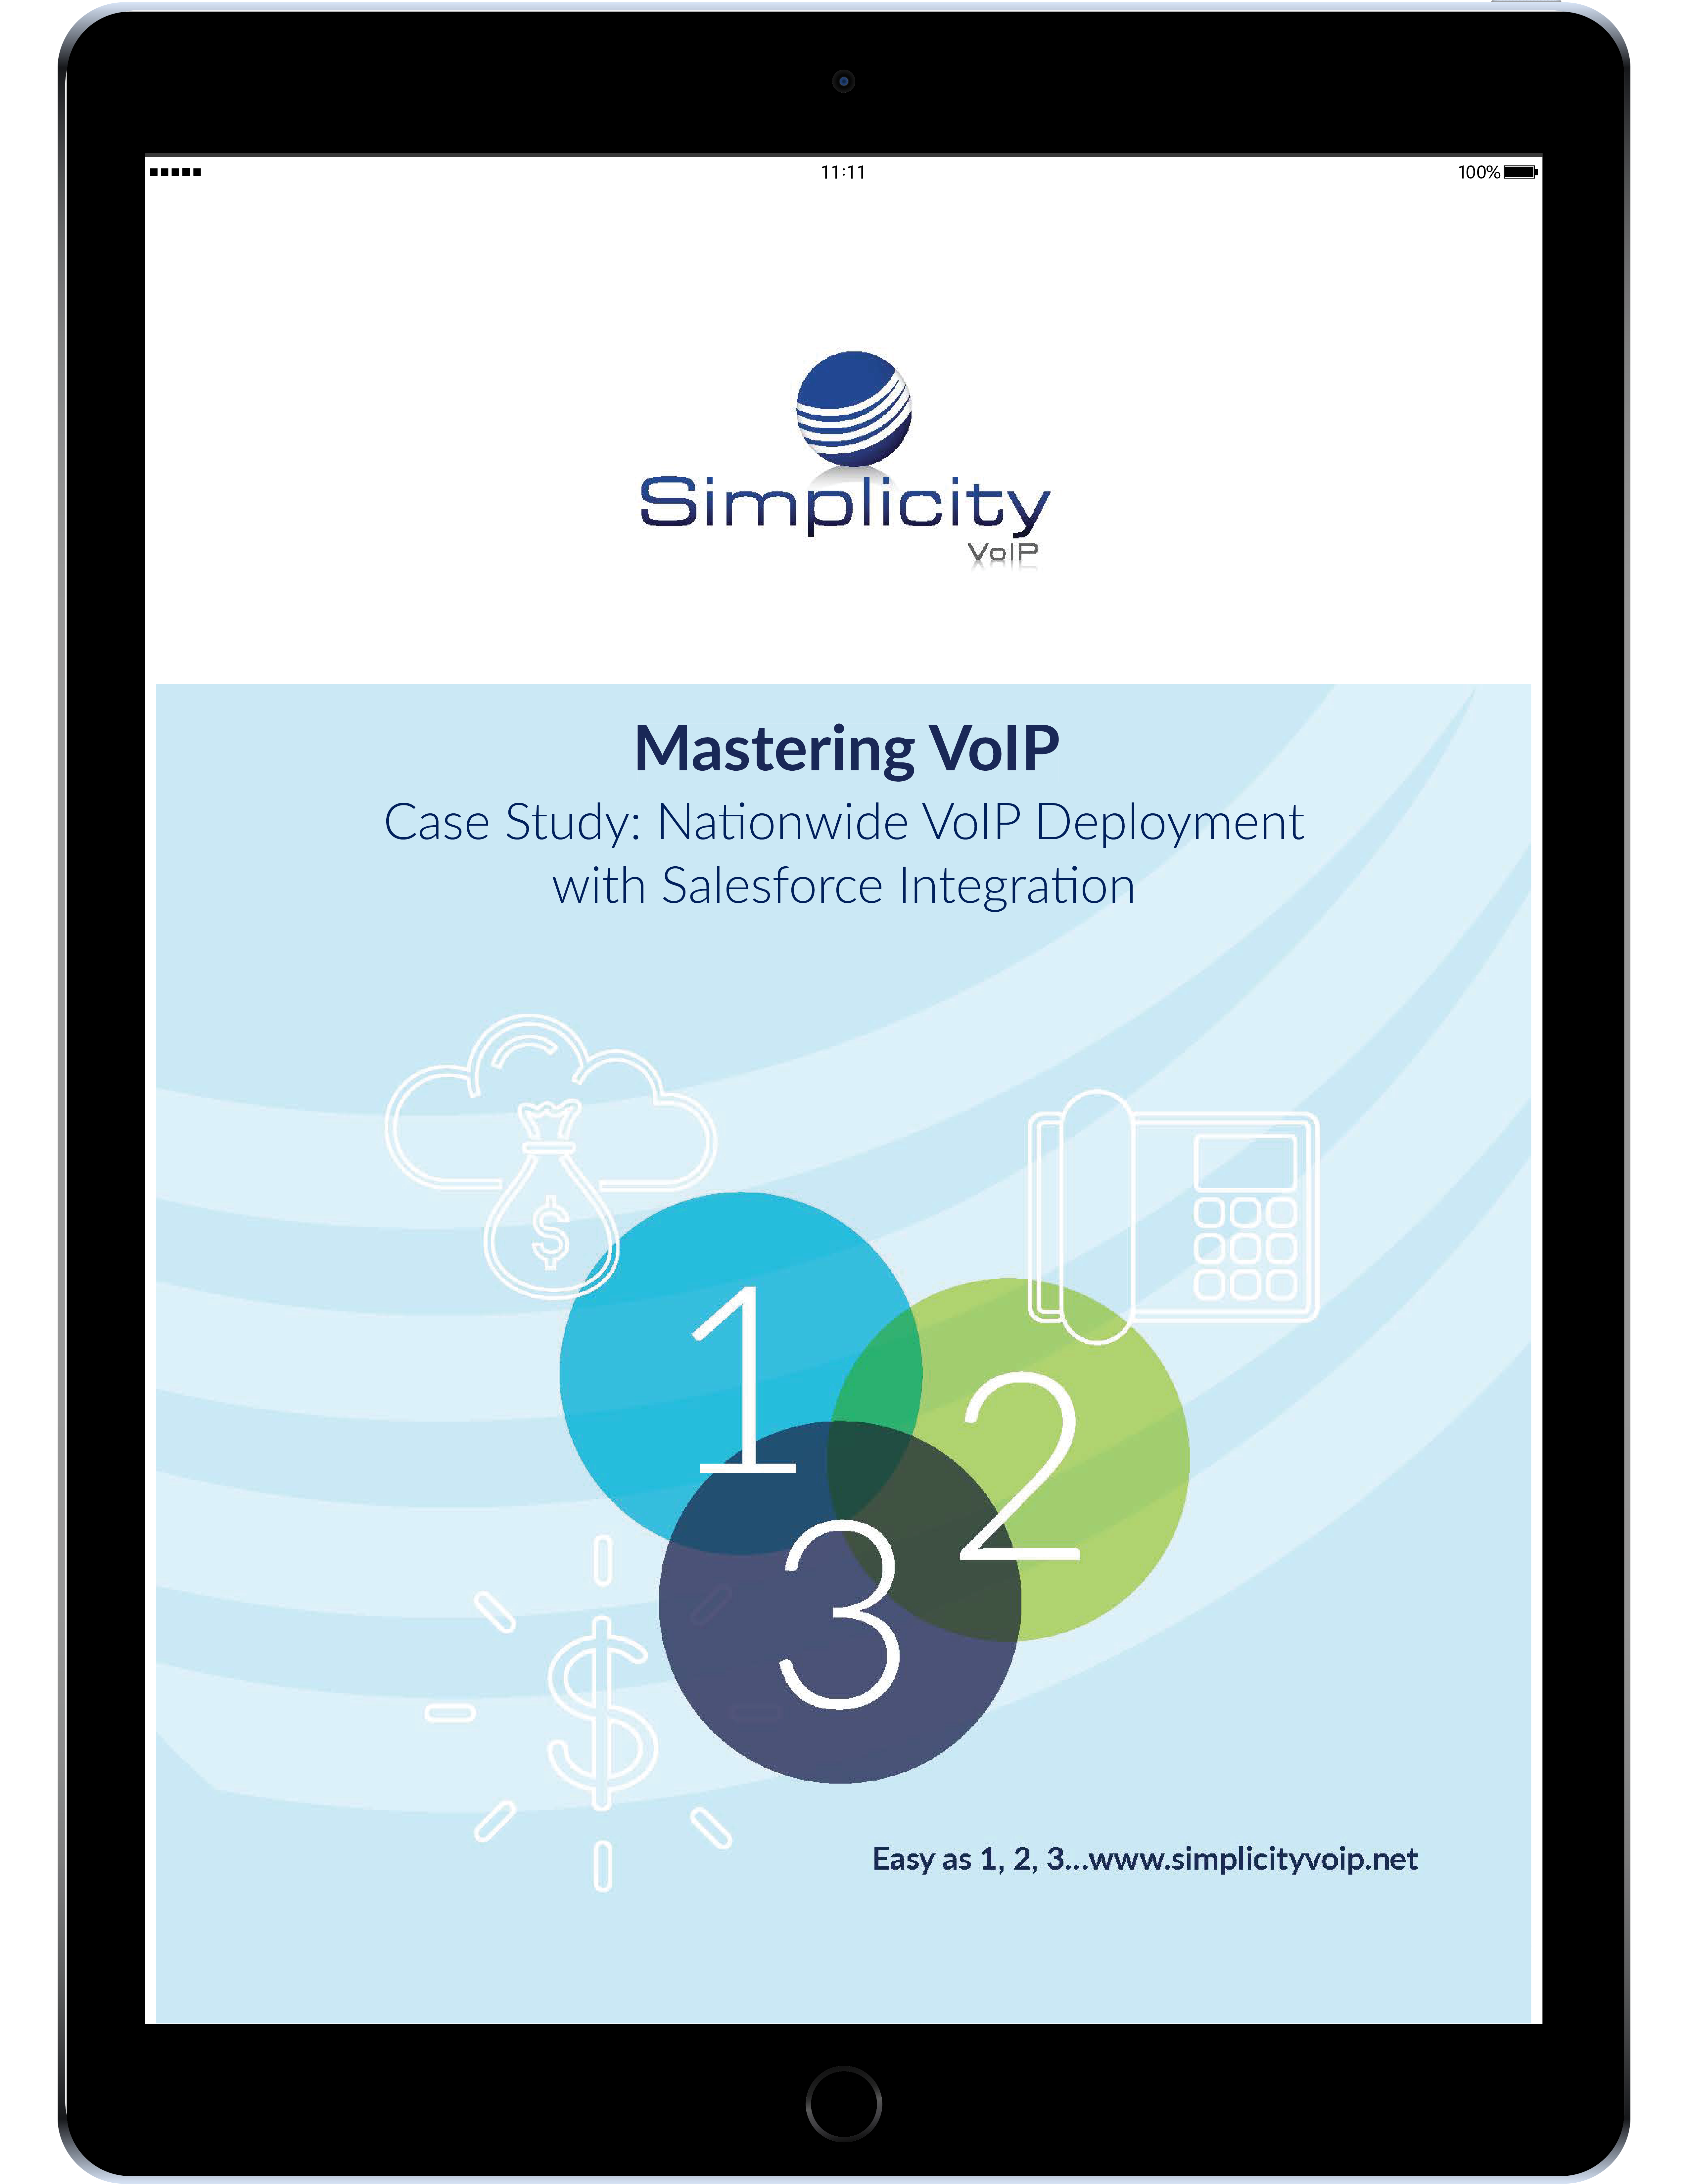 Case Study: Simplicity VoIP National Integration, Aviation Institute